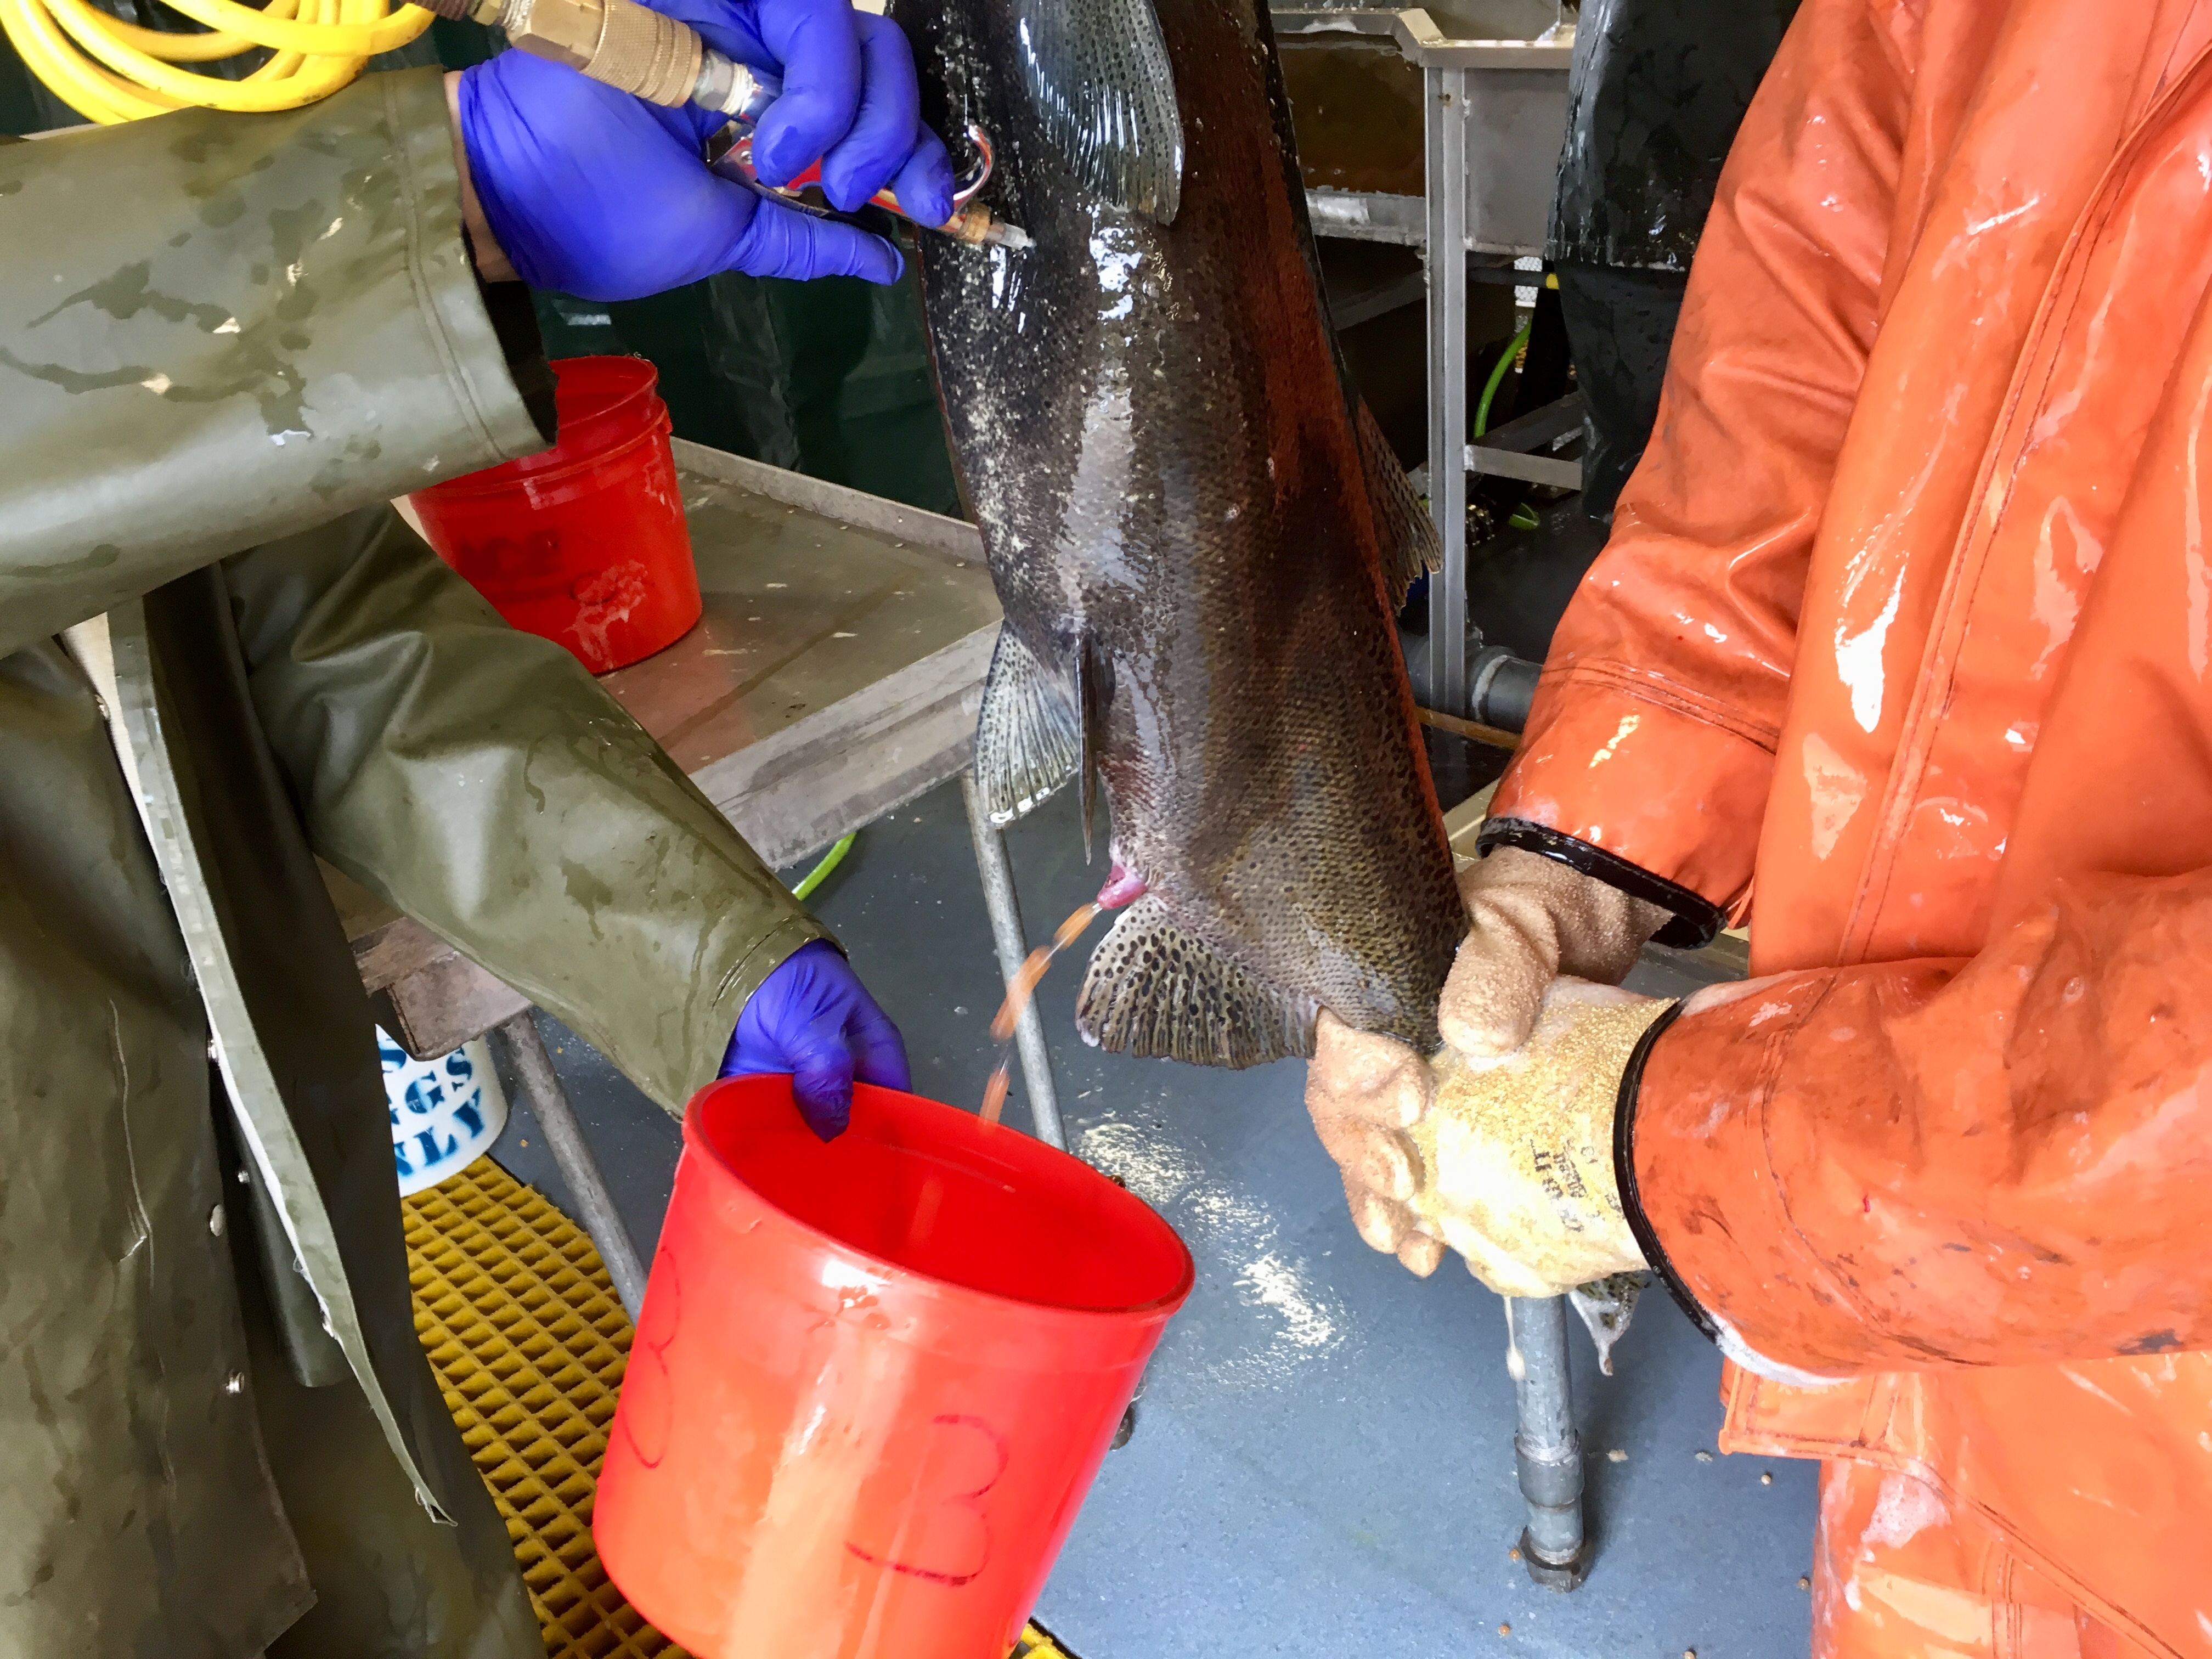 Nearly 4M chinook salmon eggs to be harvested to restock Great Lakes fisheries